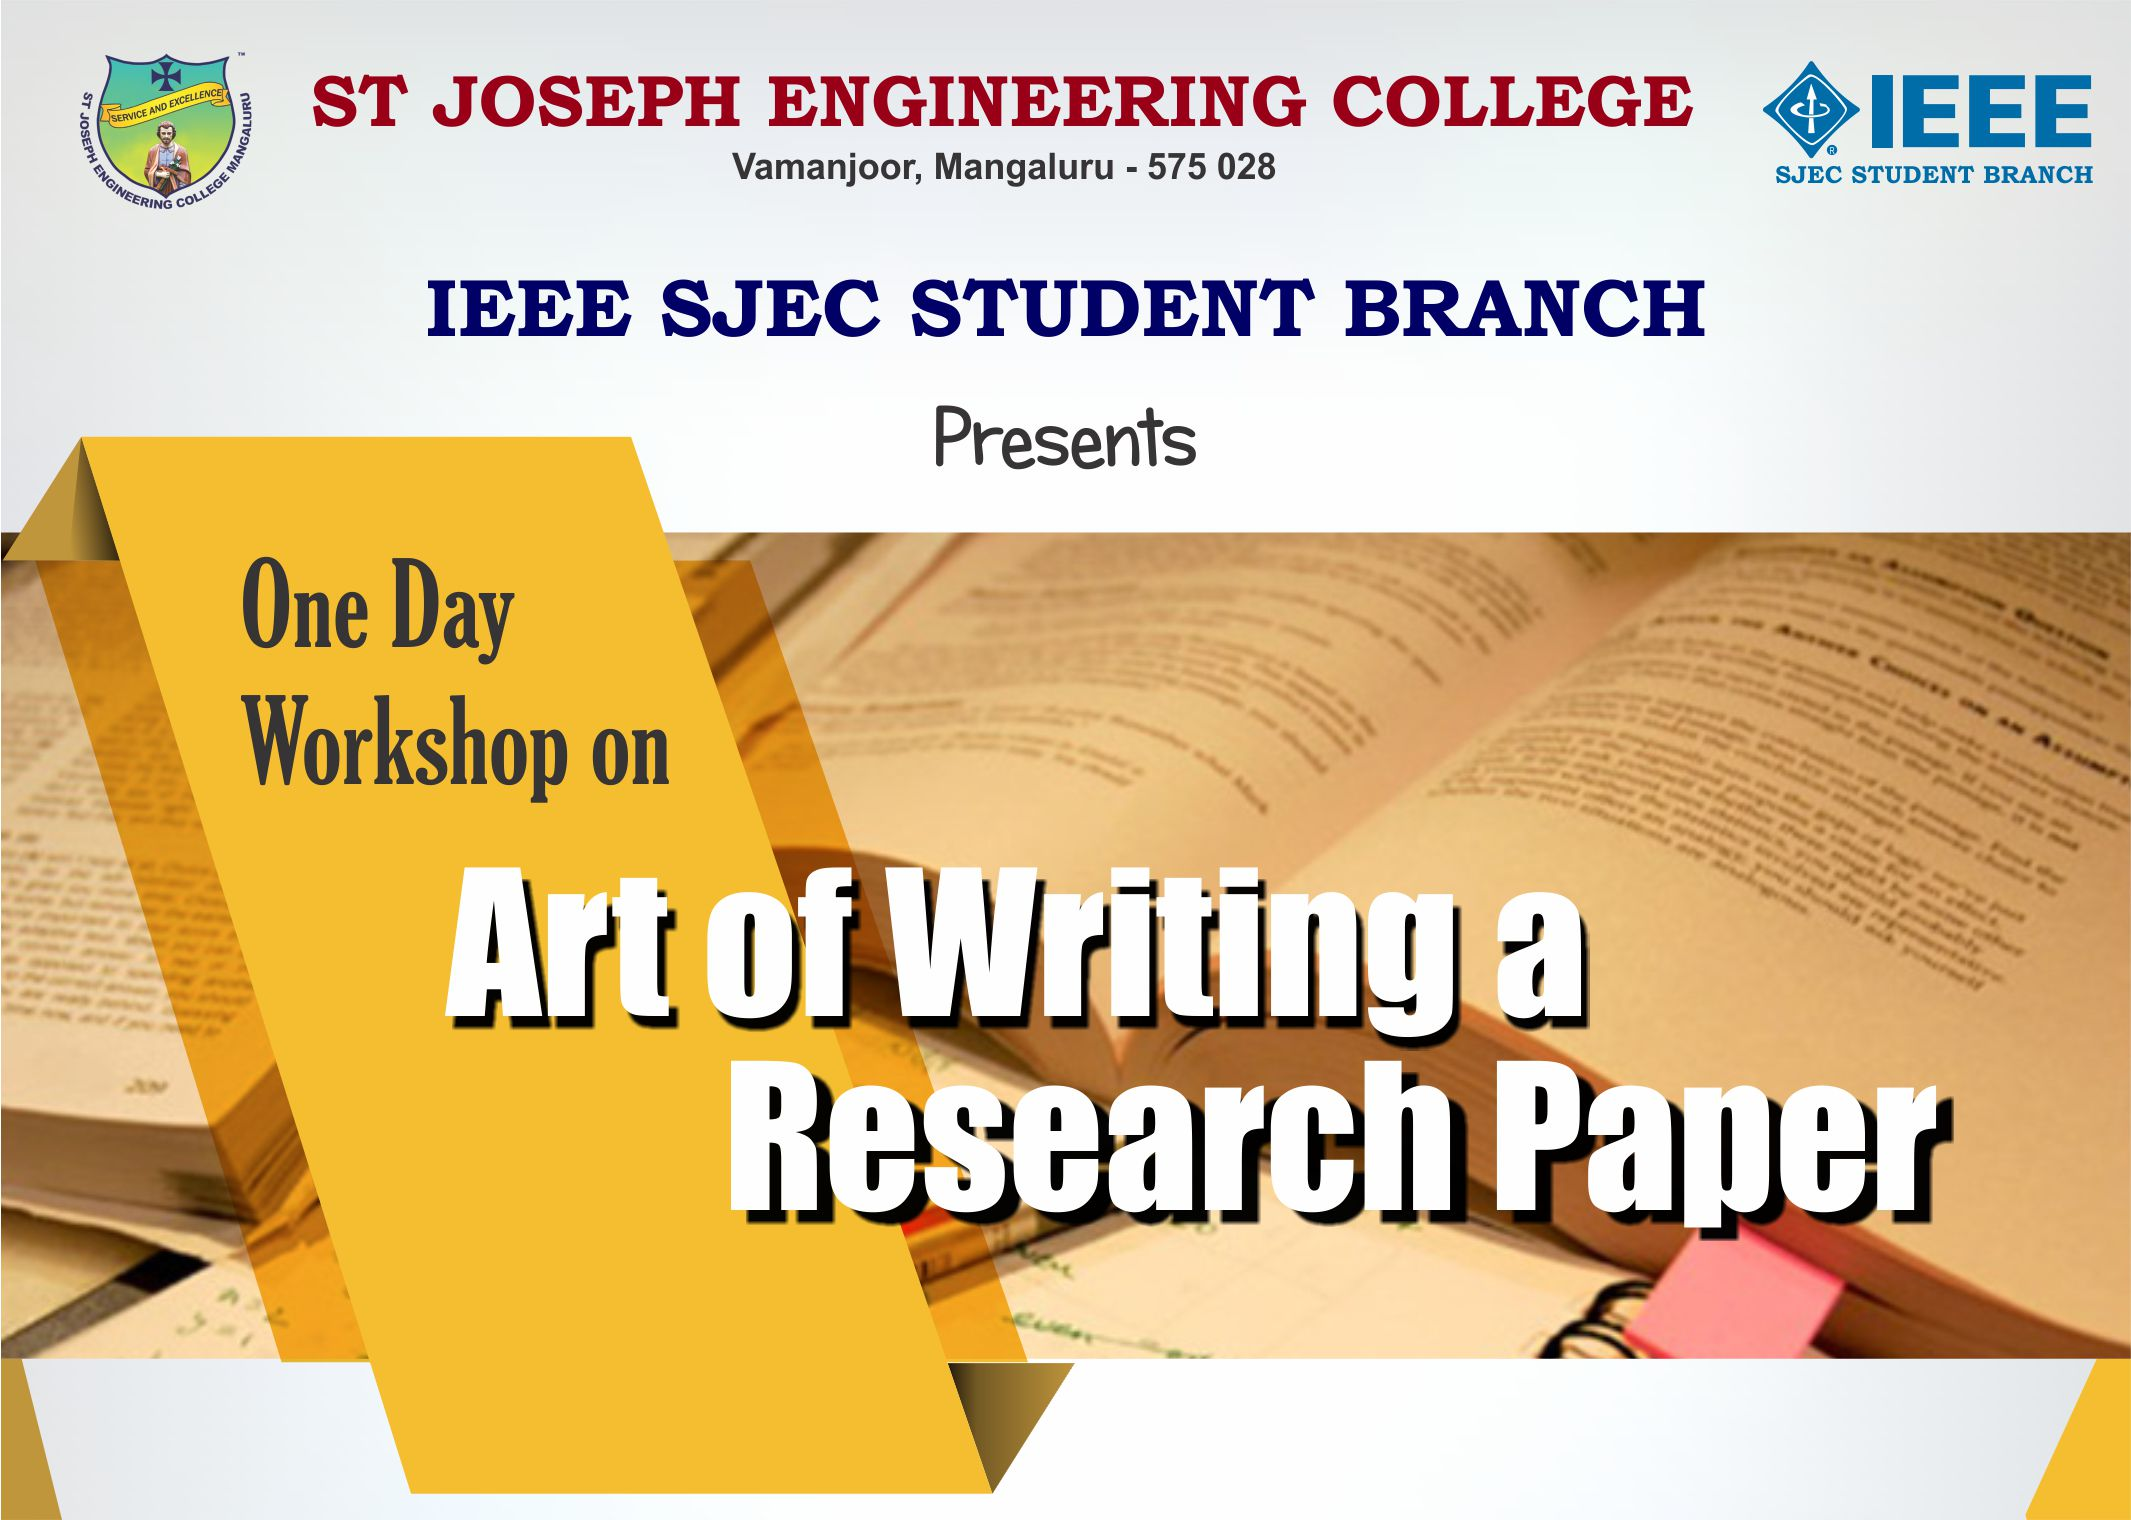 011 Research Paper Writing Workshop Unforgettable Process Software Ppt Full